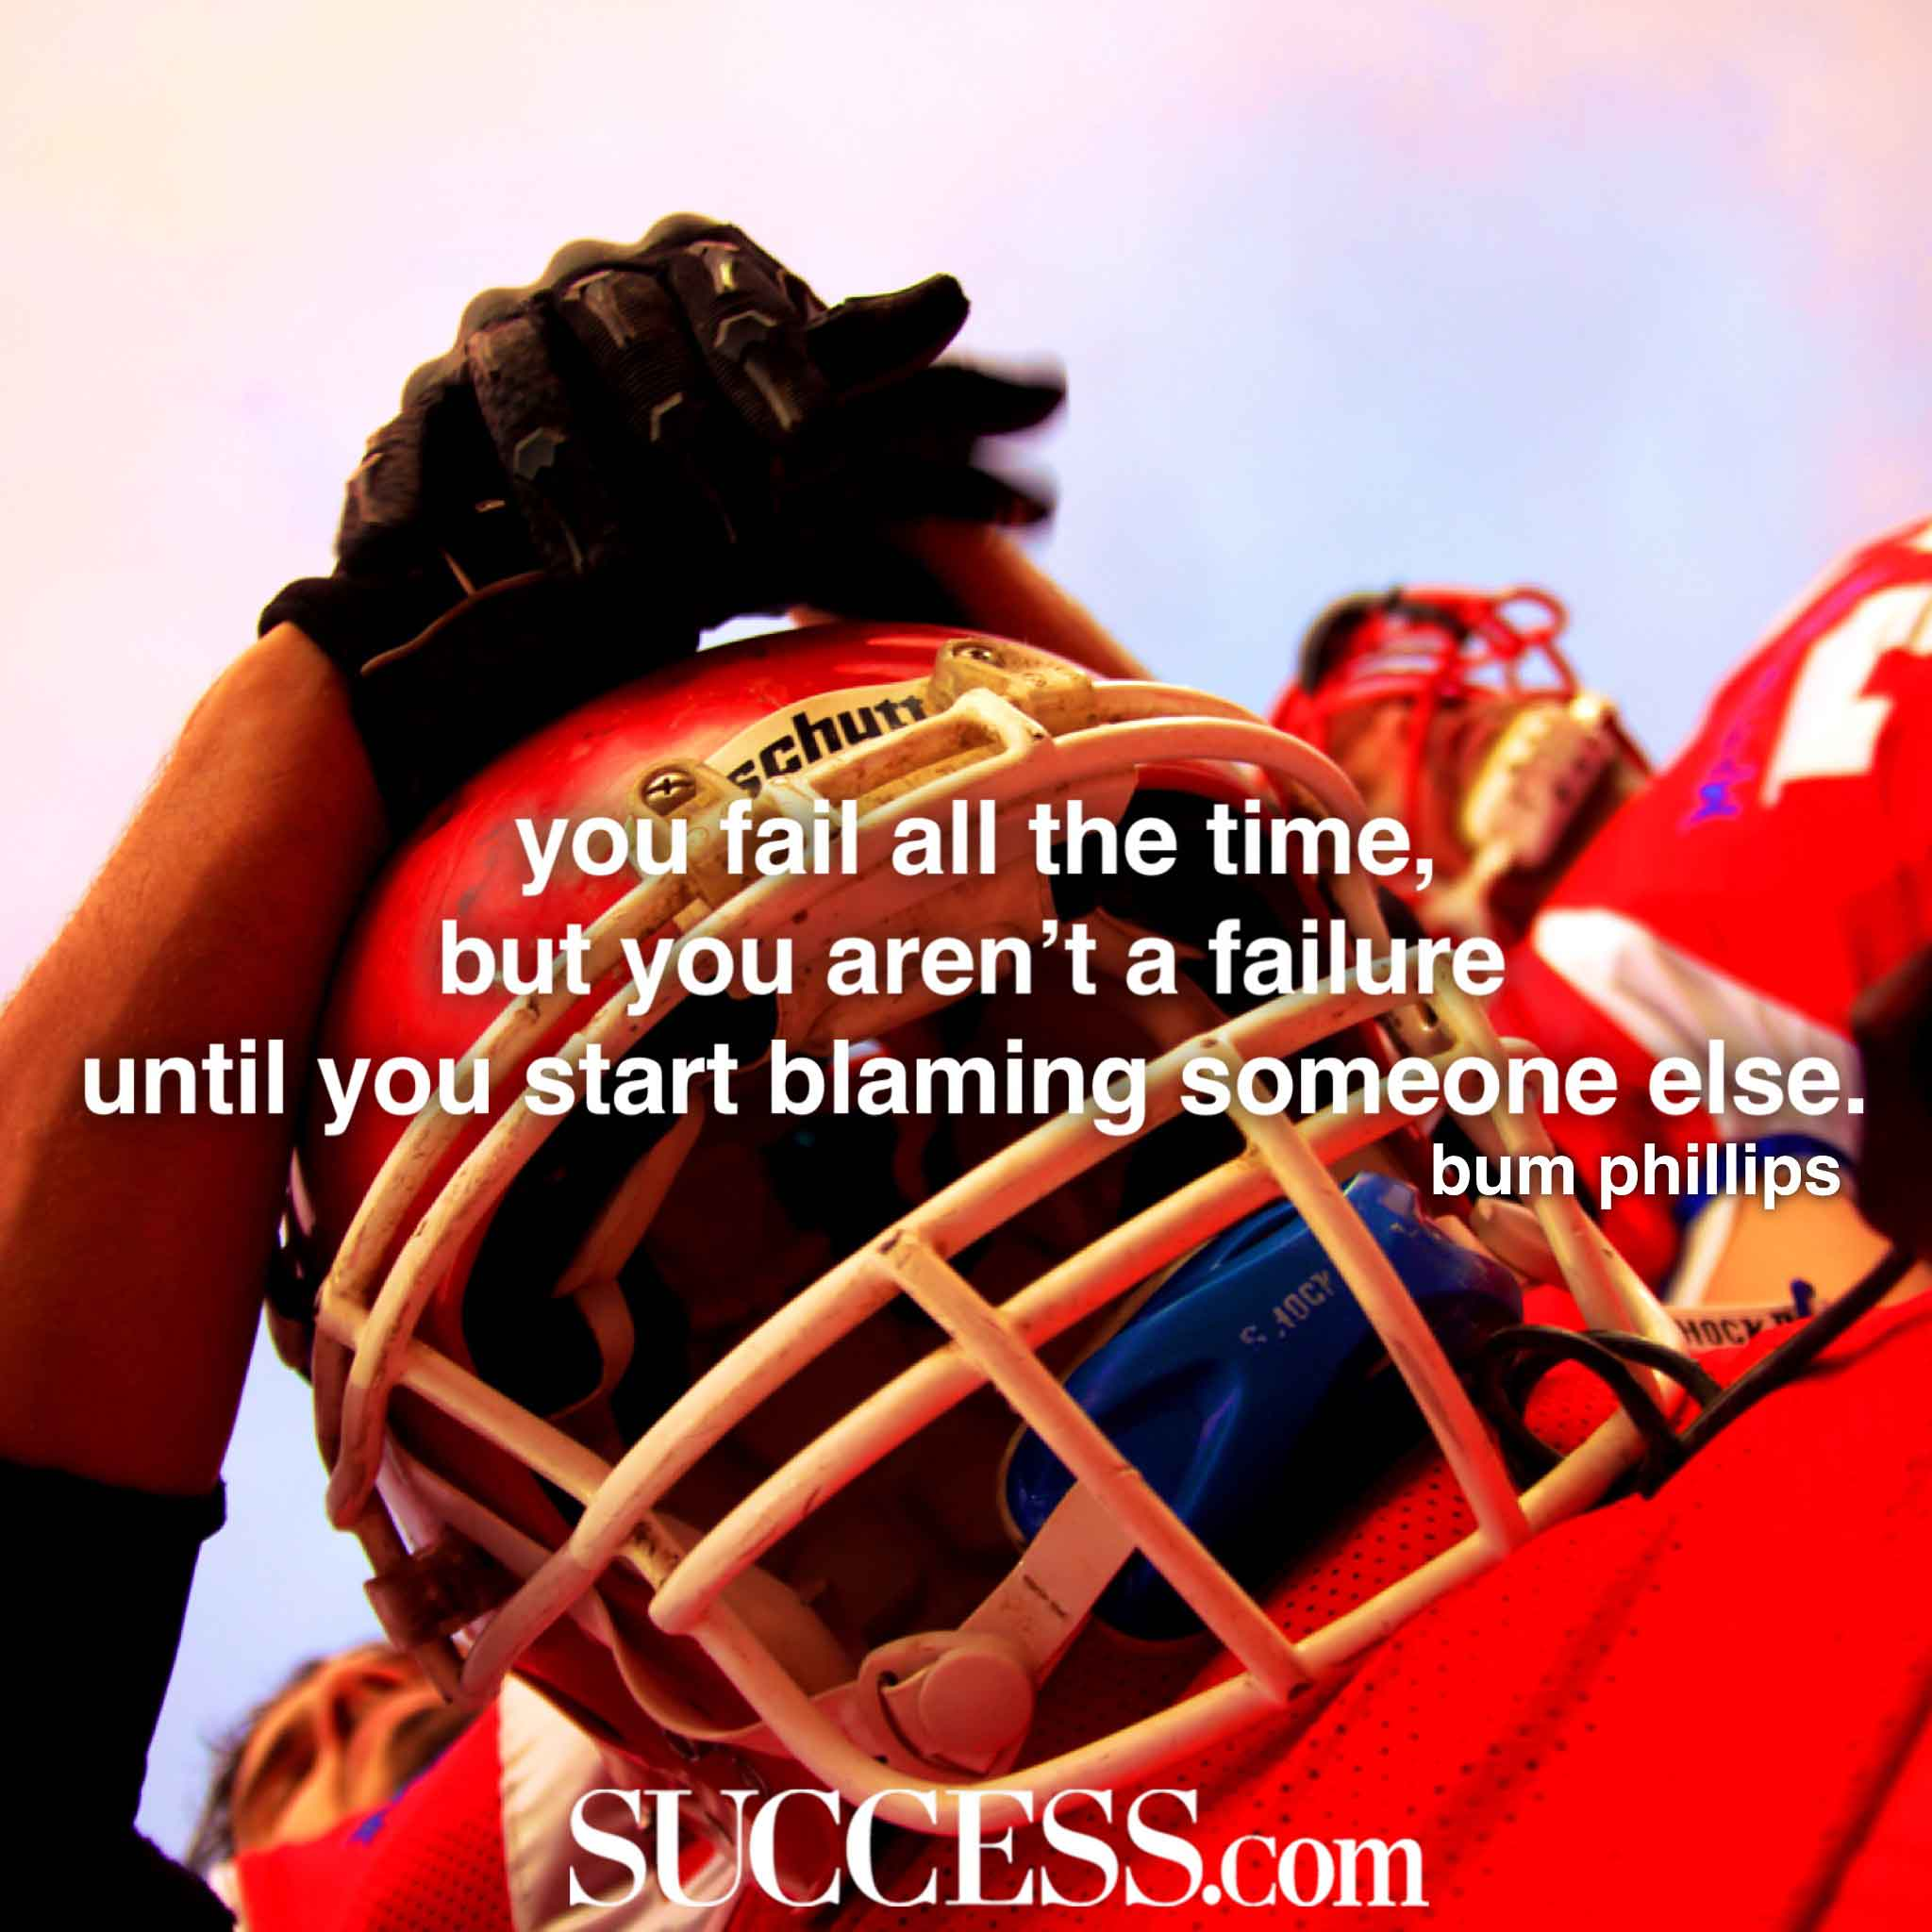 Motivational Quotes For Sports Teams: 20 Motivational Quotes By The Most Inspiring NFL Coaches